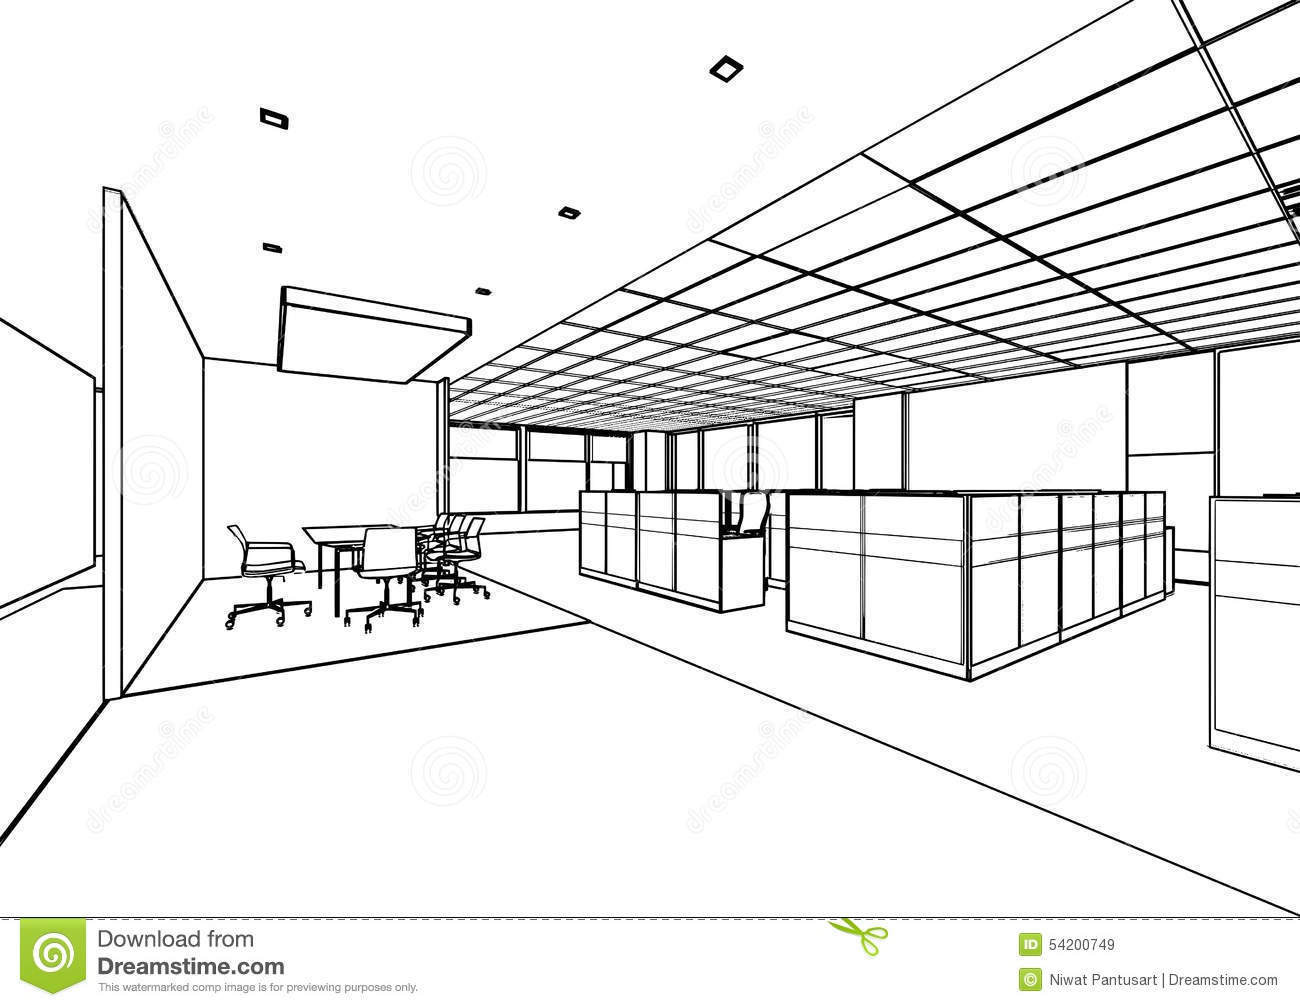 House Perspective With Floor Plan Outline Sketch Of A Interior Stock Illustration Image